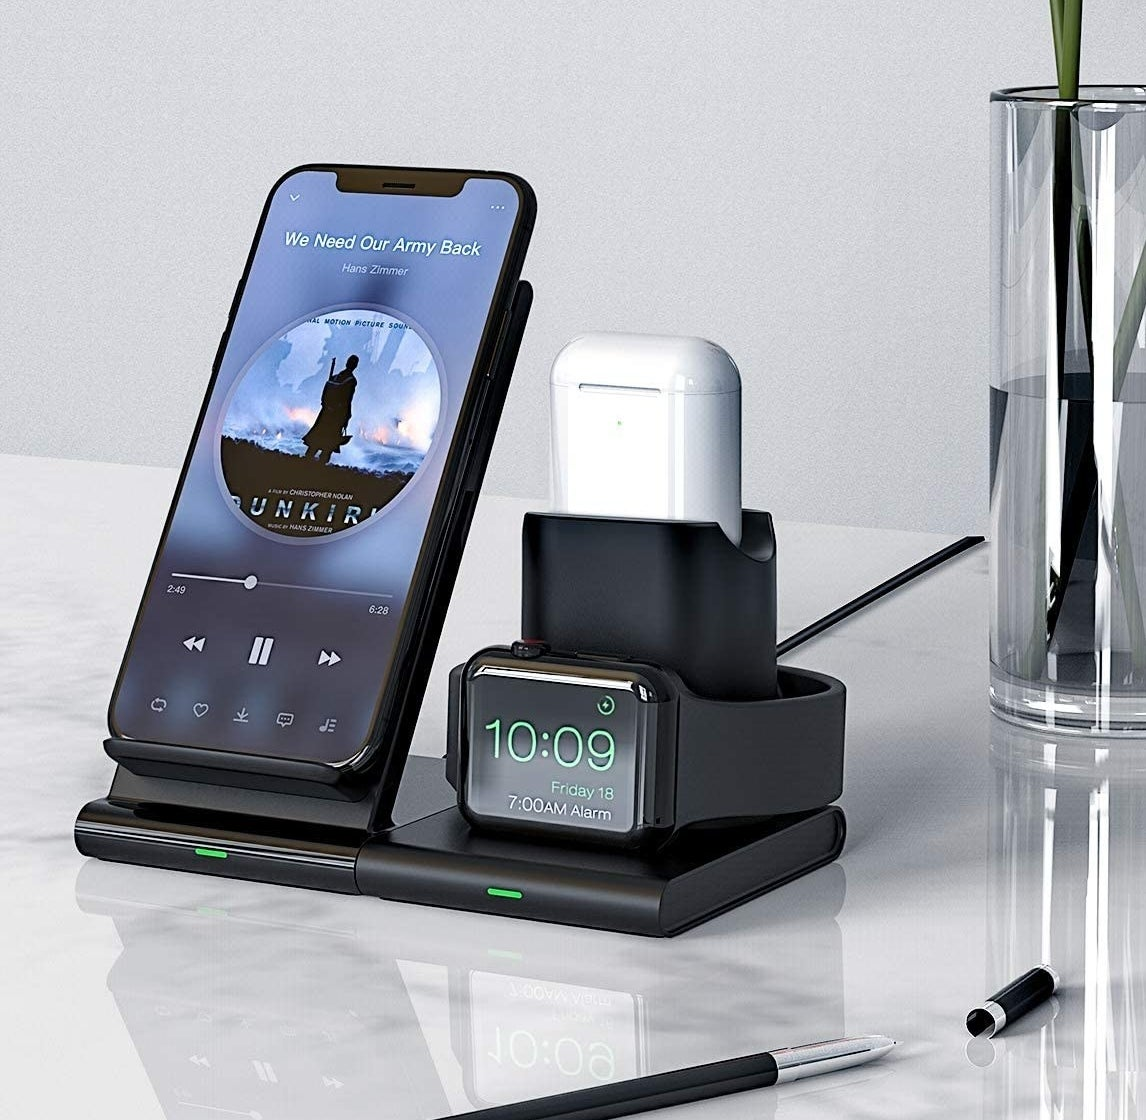 A phone, airpods case, and apple watch charging together on the charging platform